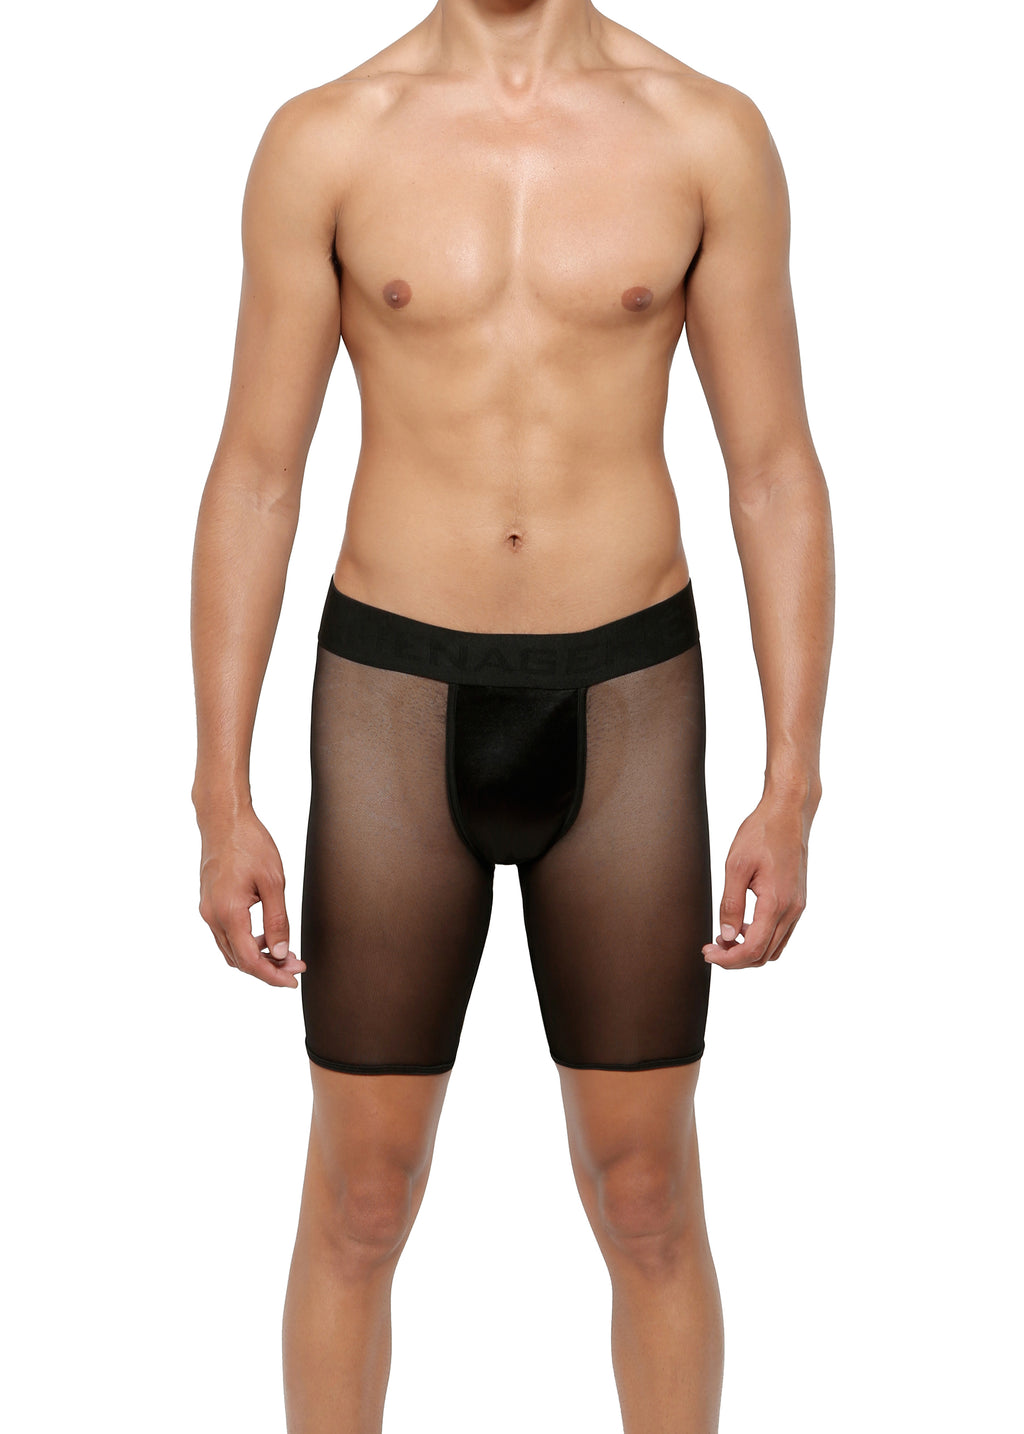 CYCLE SHORT in MICRO-MESH - MENAGERIE Intimates MENS Lingerie